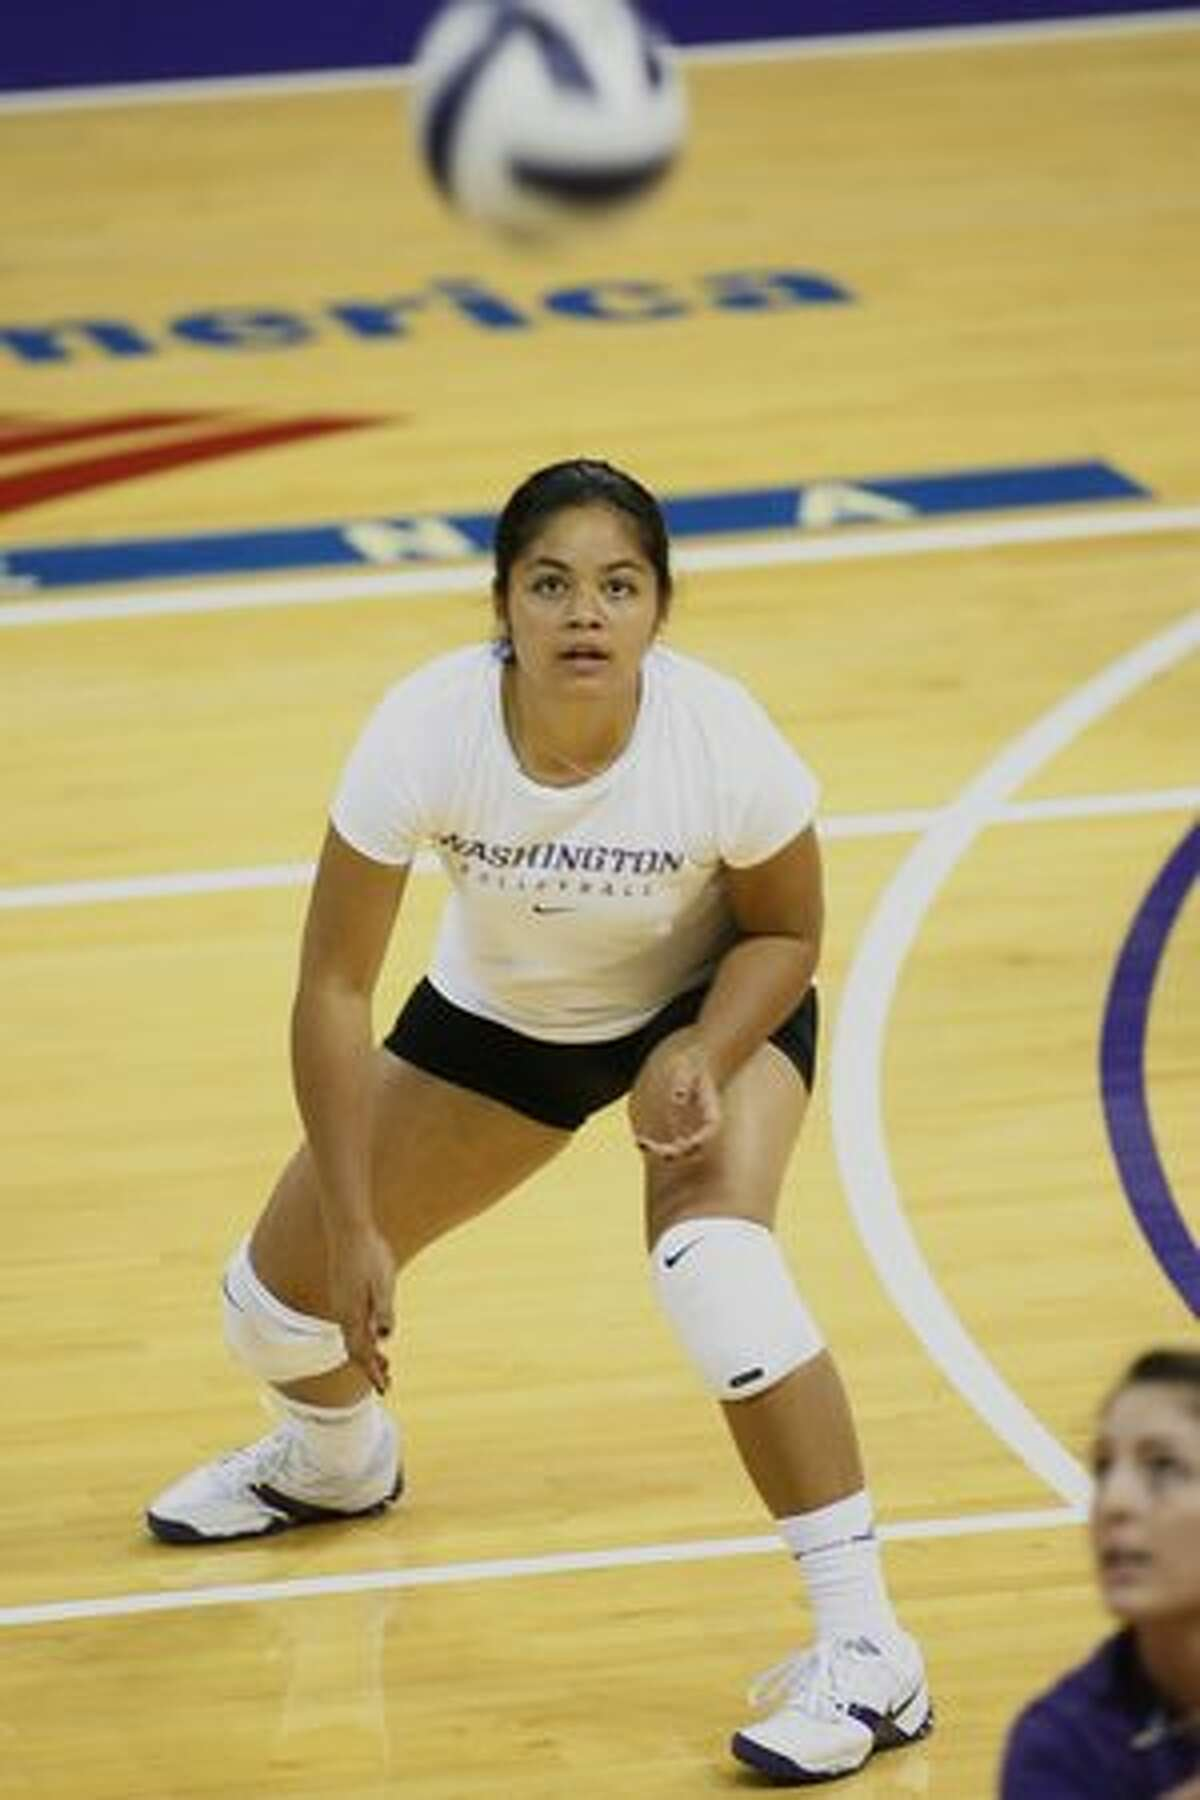 Tamari Miayshiro tracks the ball during practice. UW Volleyball team practice at Hec Ed. Wednesday, September 24, 2008 Seattle. Photograph by Grant M. Haller/Seattle Post-Intelligencer